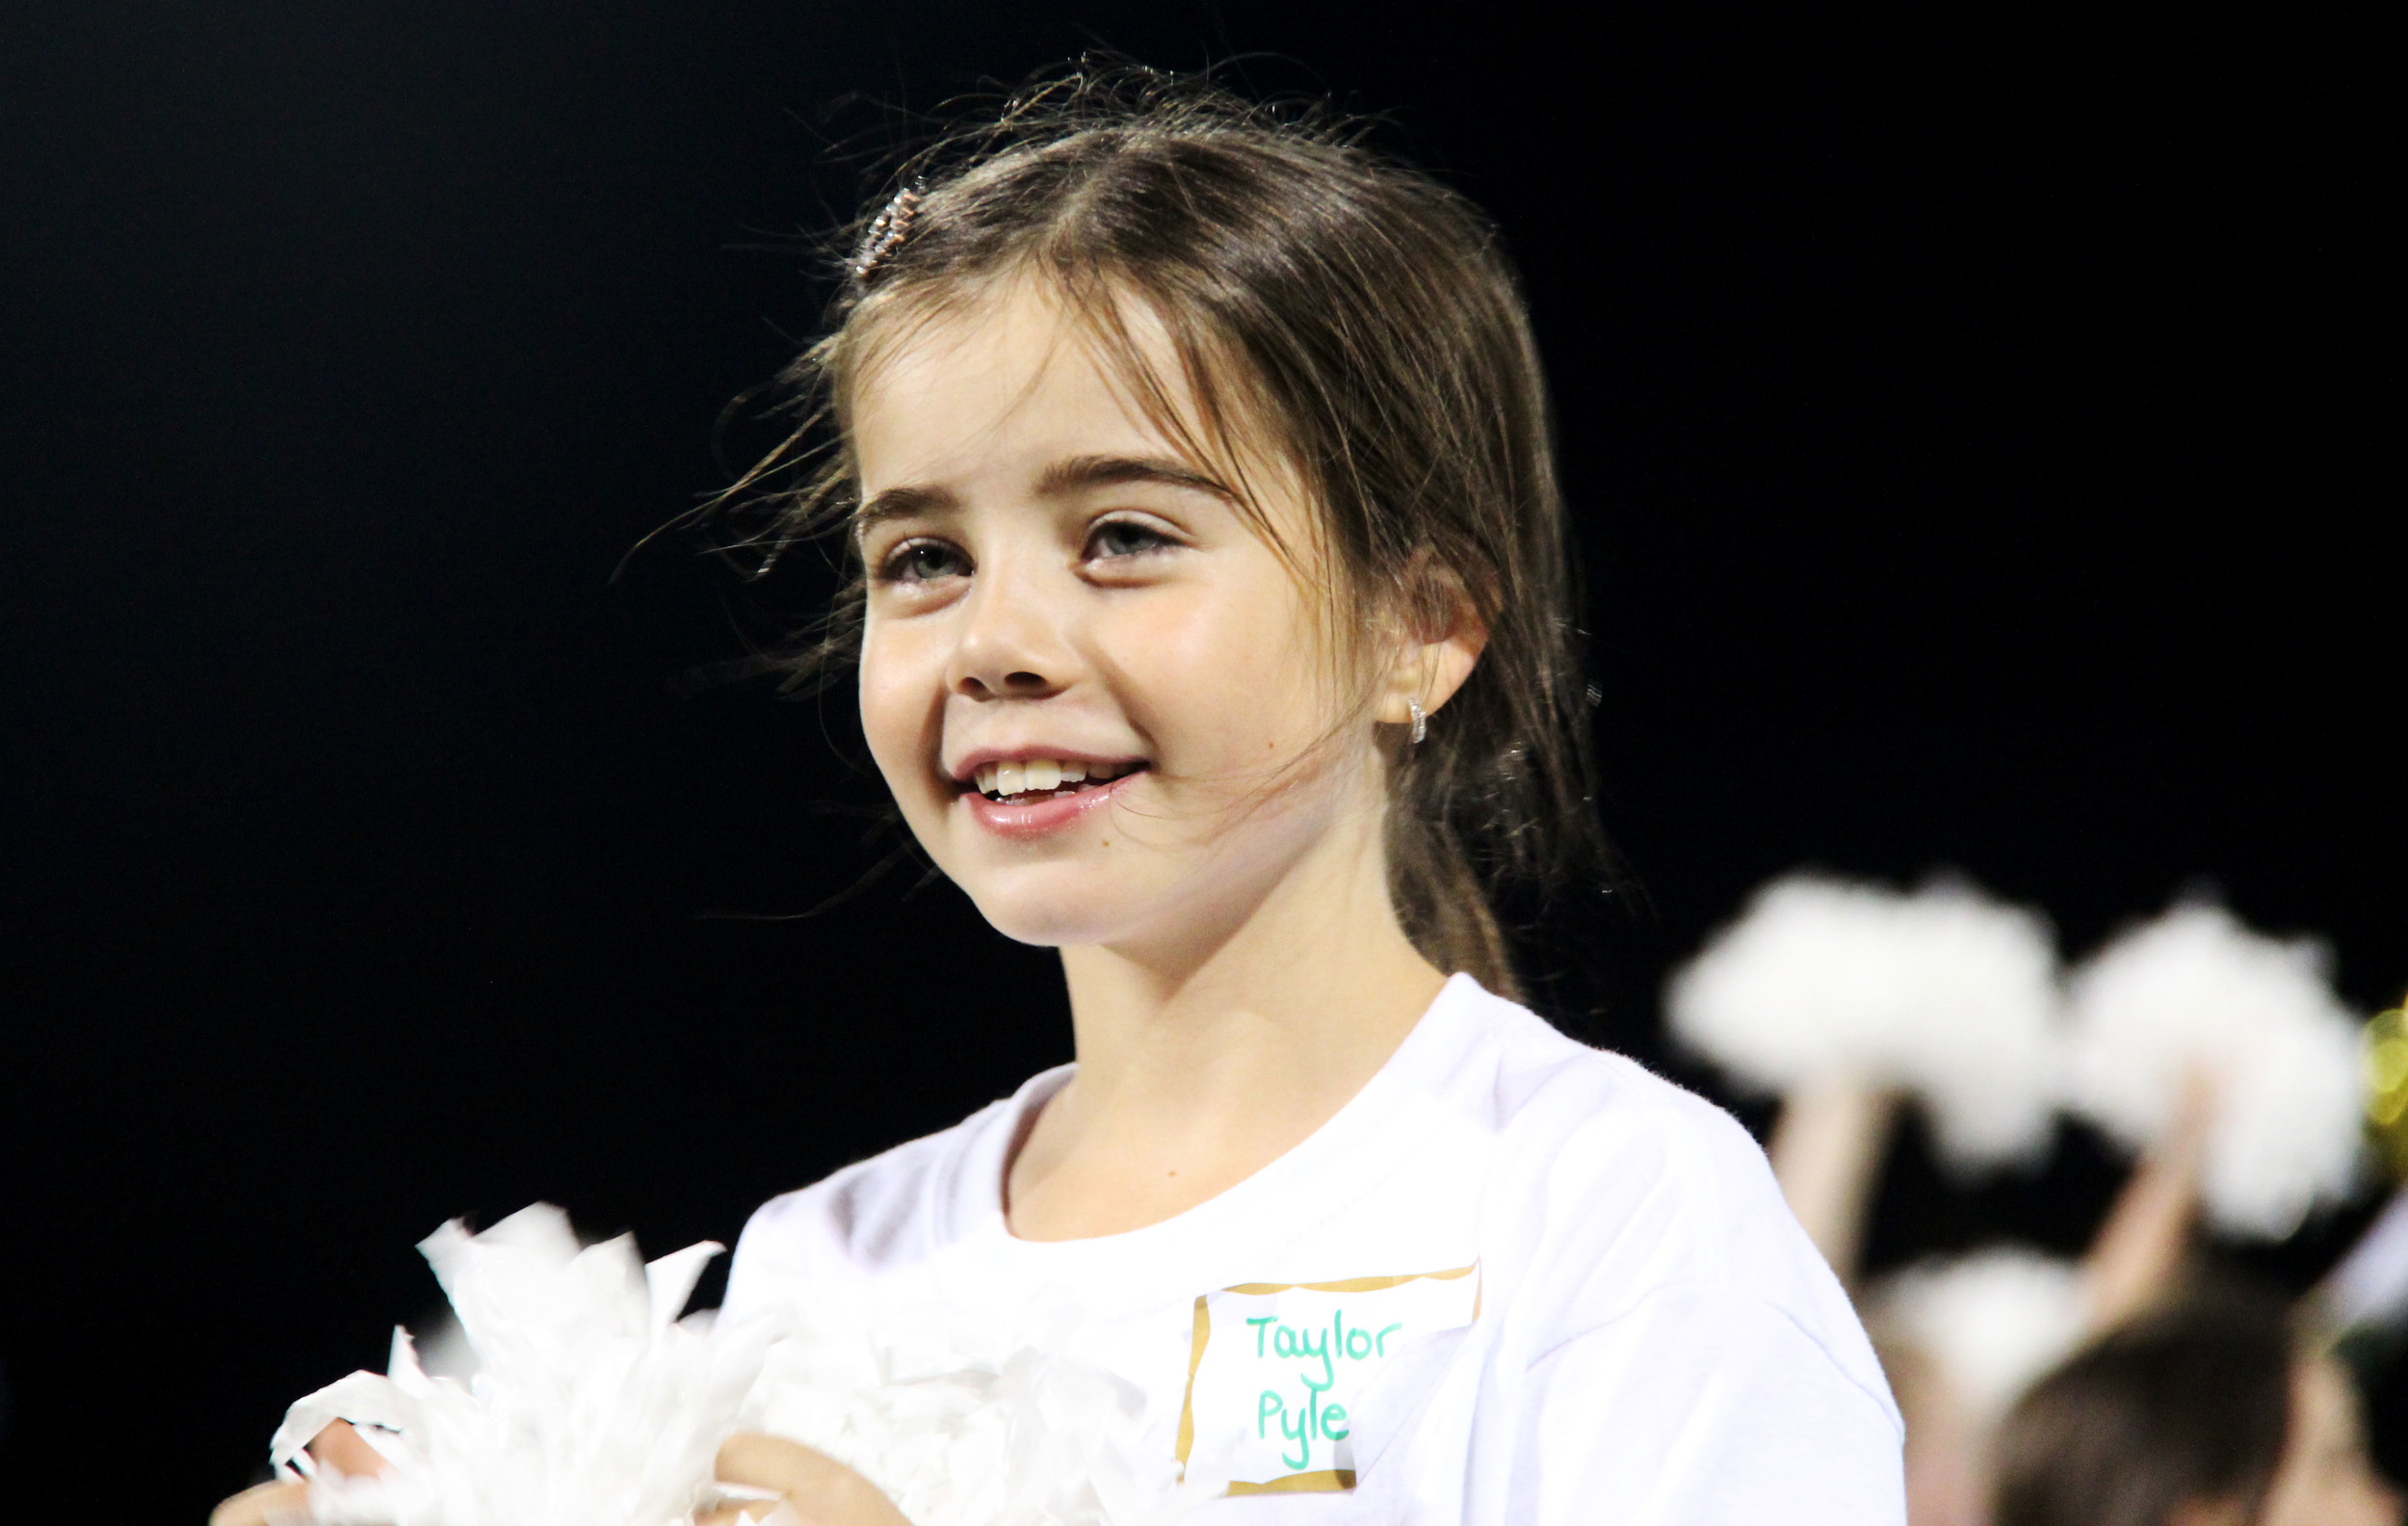 A student poms dancer performs at halftime of the Mountain Vista, ThunderRidge rivalry football game.